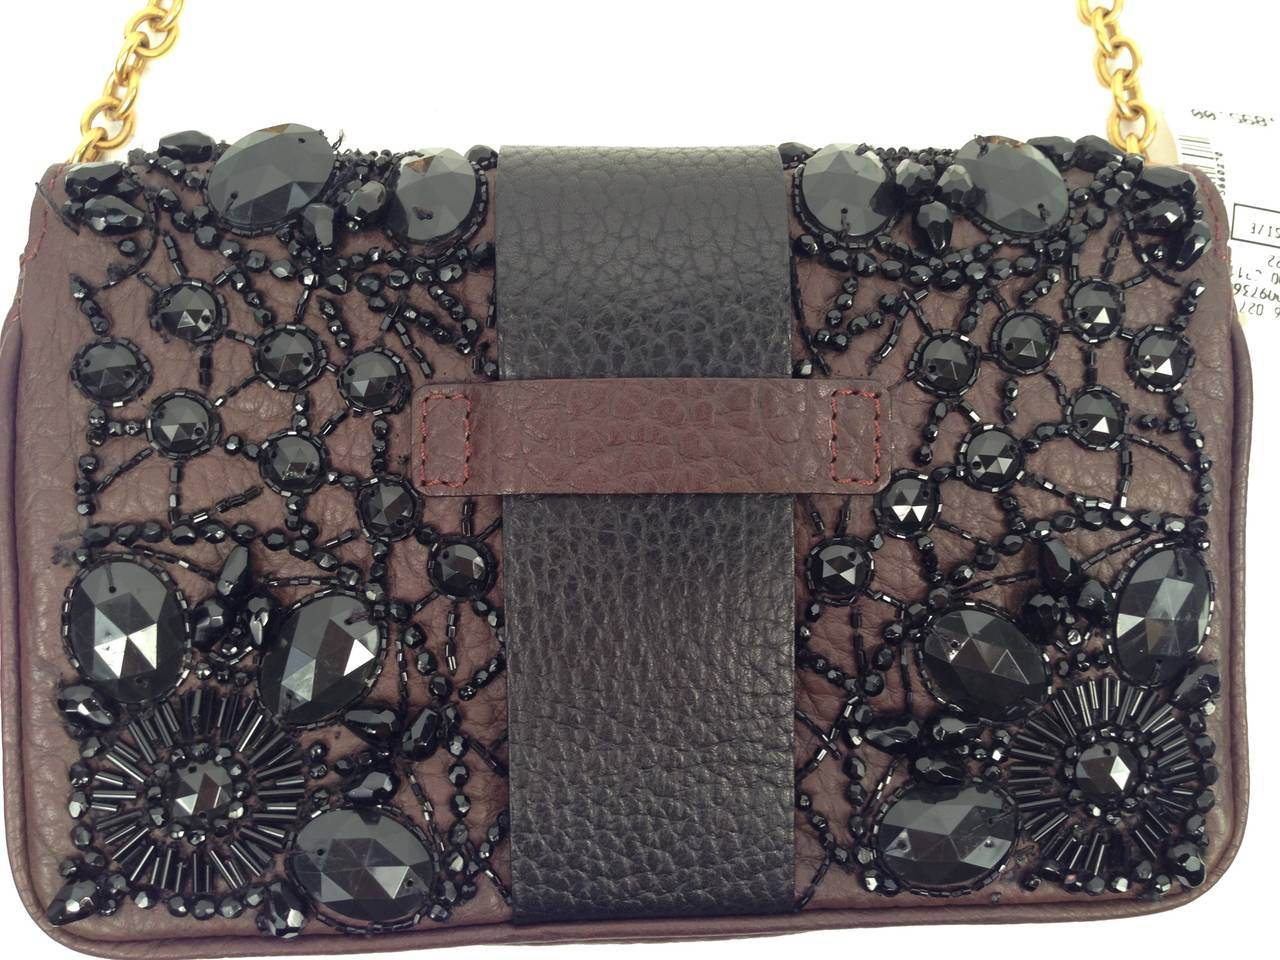 368119e7fc8 Valentino Garavani Chocolate and Black Beaded Shoulder Bag In New Condition  For Sale In Palm Beach